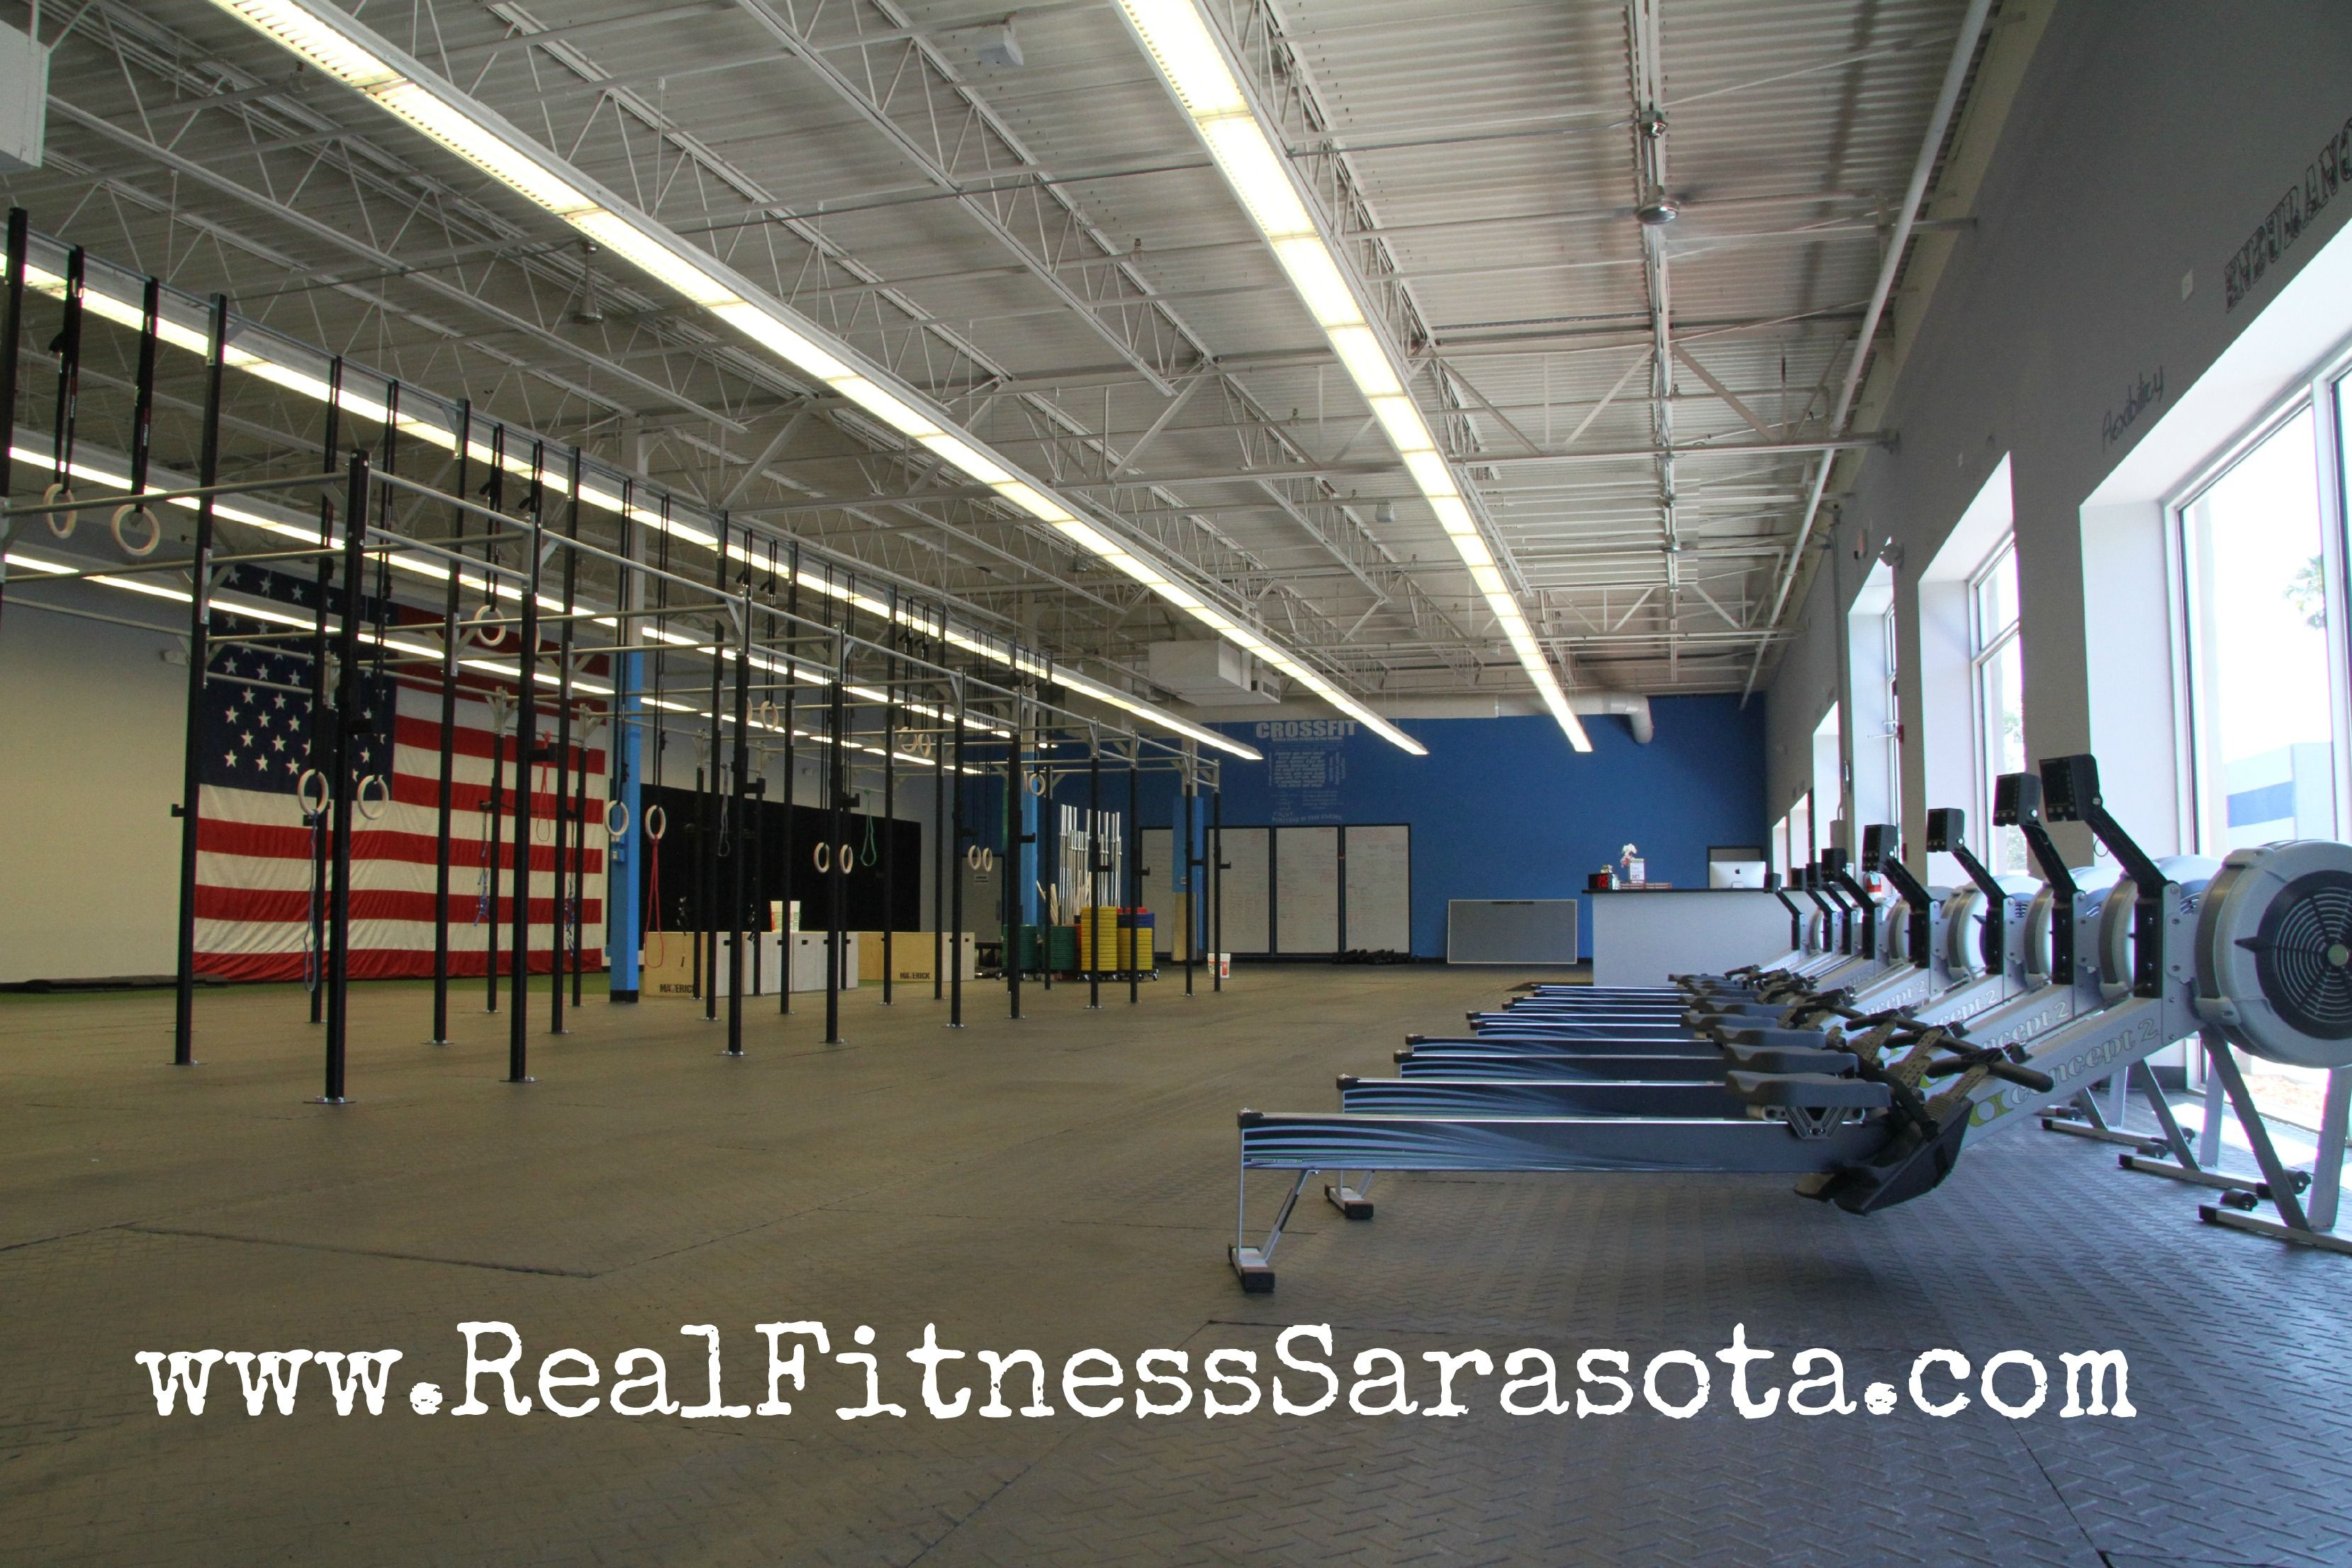 Real Fitness Sarasota Crossfit Gym The Amazing Crossfit Box My Family Opened In Sarasota Go Visit If You Ar Crossfit Gym Crossfit Inspiration Crossfit Box